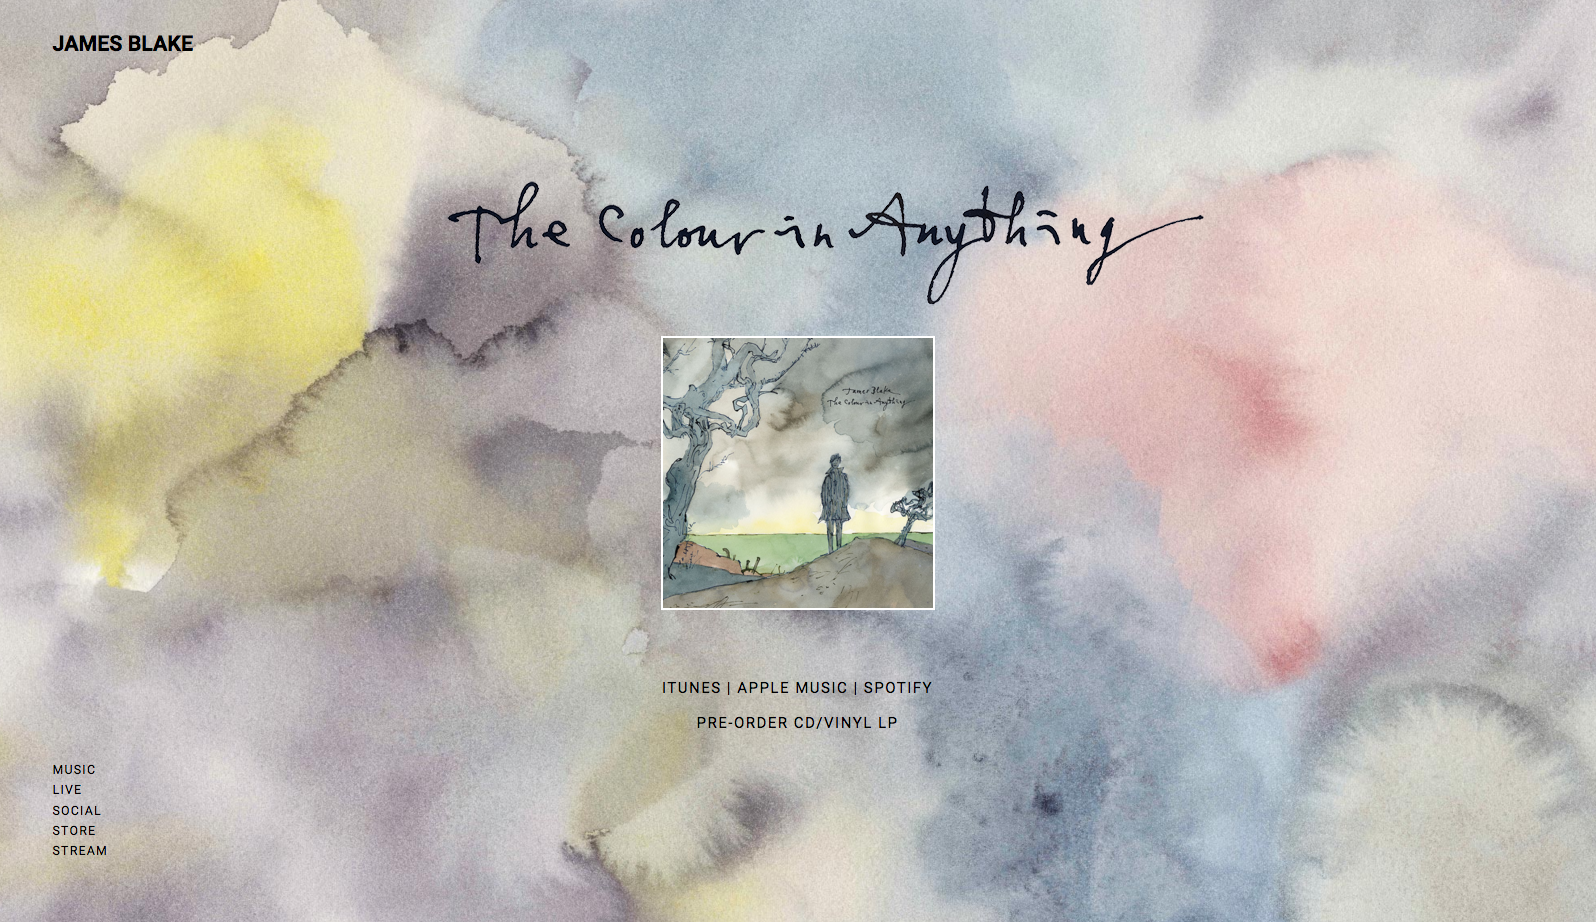 The homepage of James Blake's website with art by Sir Quentin Blake